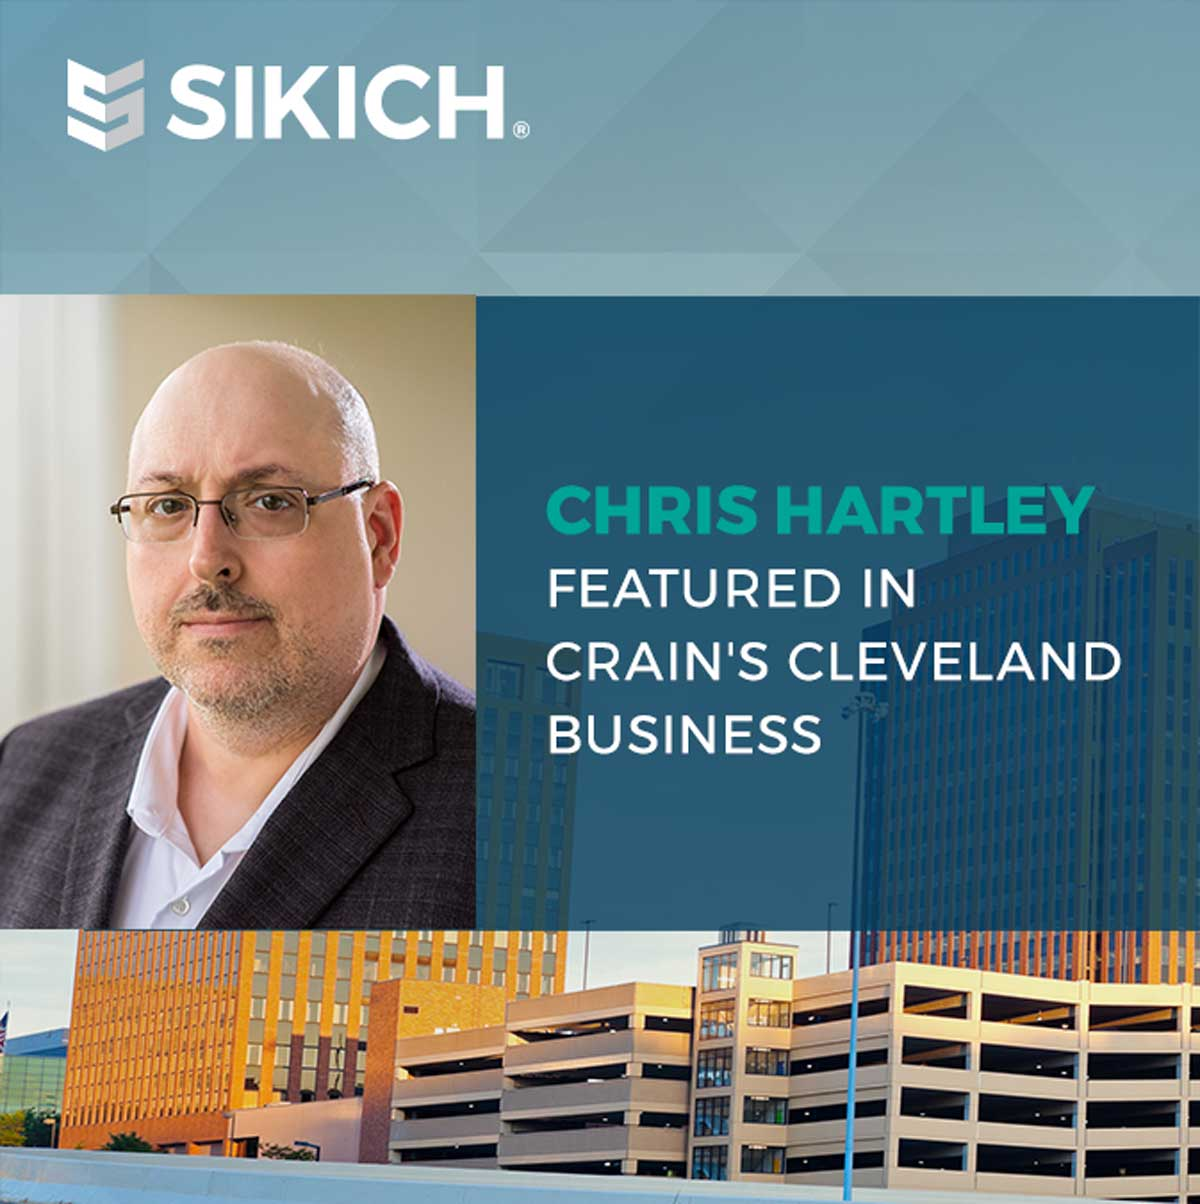 Chris Hartley's headshot and an image of Akron buildings with Sikich logo and coloring. text reads Chris Hartley featured in Crain's Cleveland Business